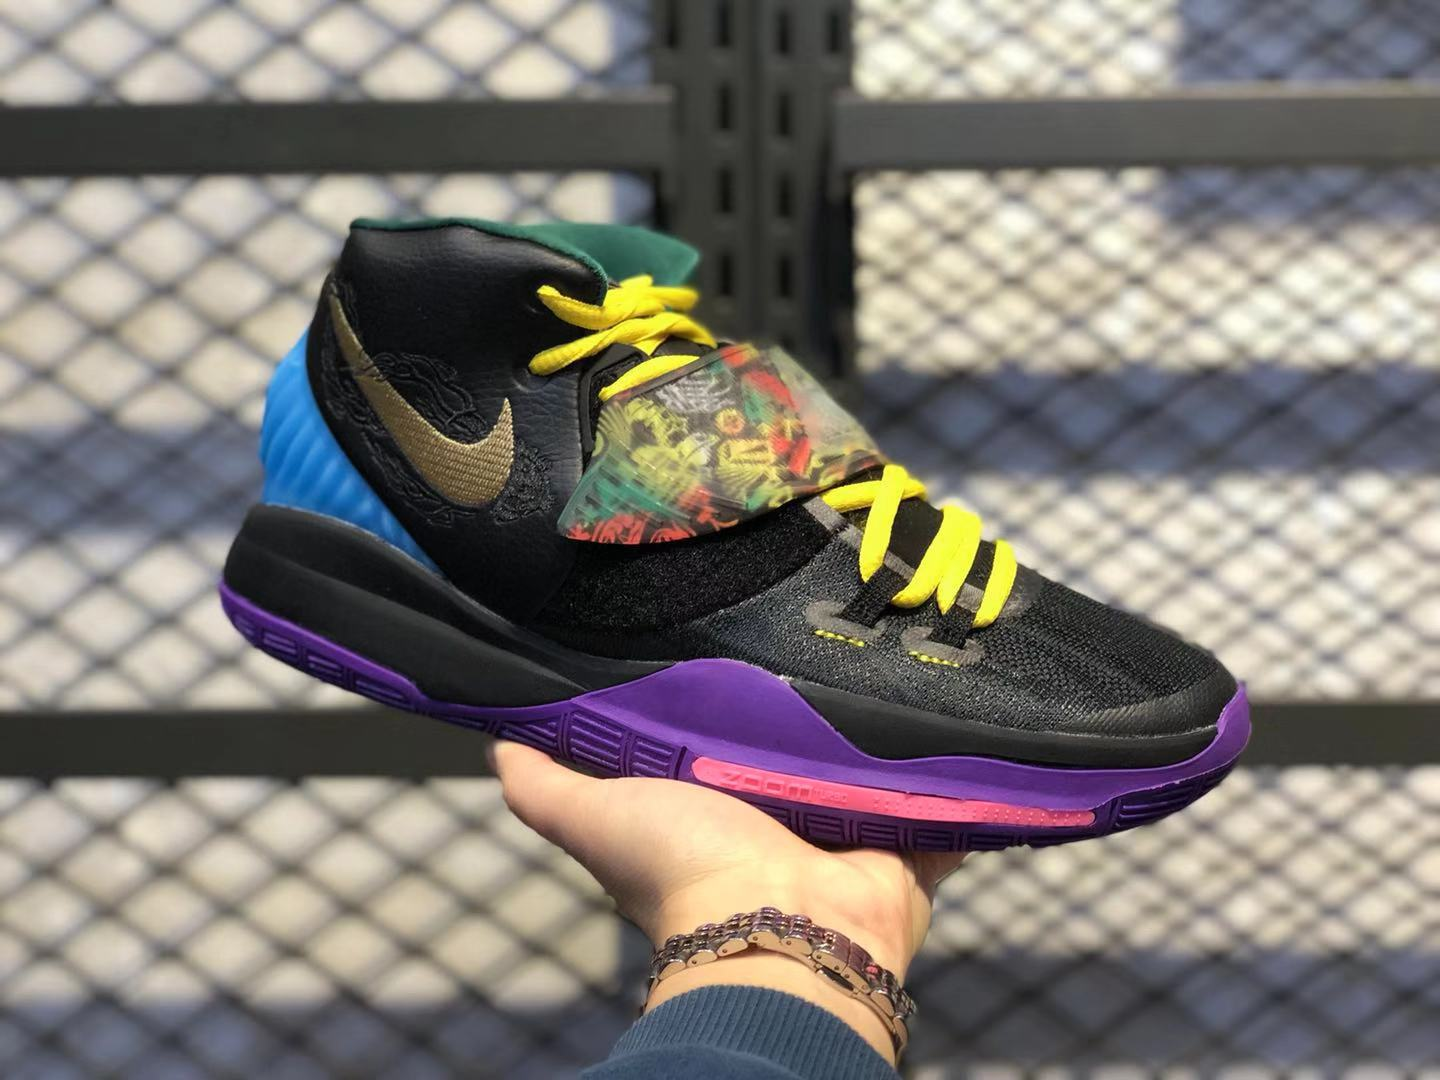 Buy Nike Kyrie 6 Black/Fluorescent Yellow-Multi-Color Men's Sneakers CD5029-001